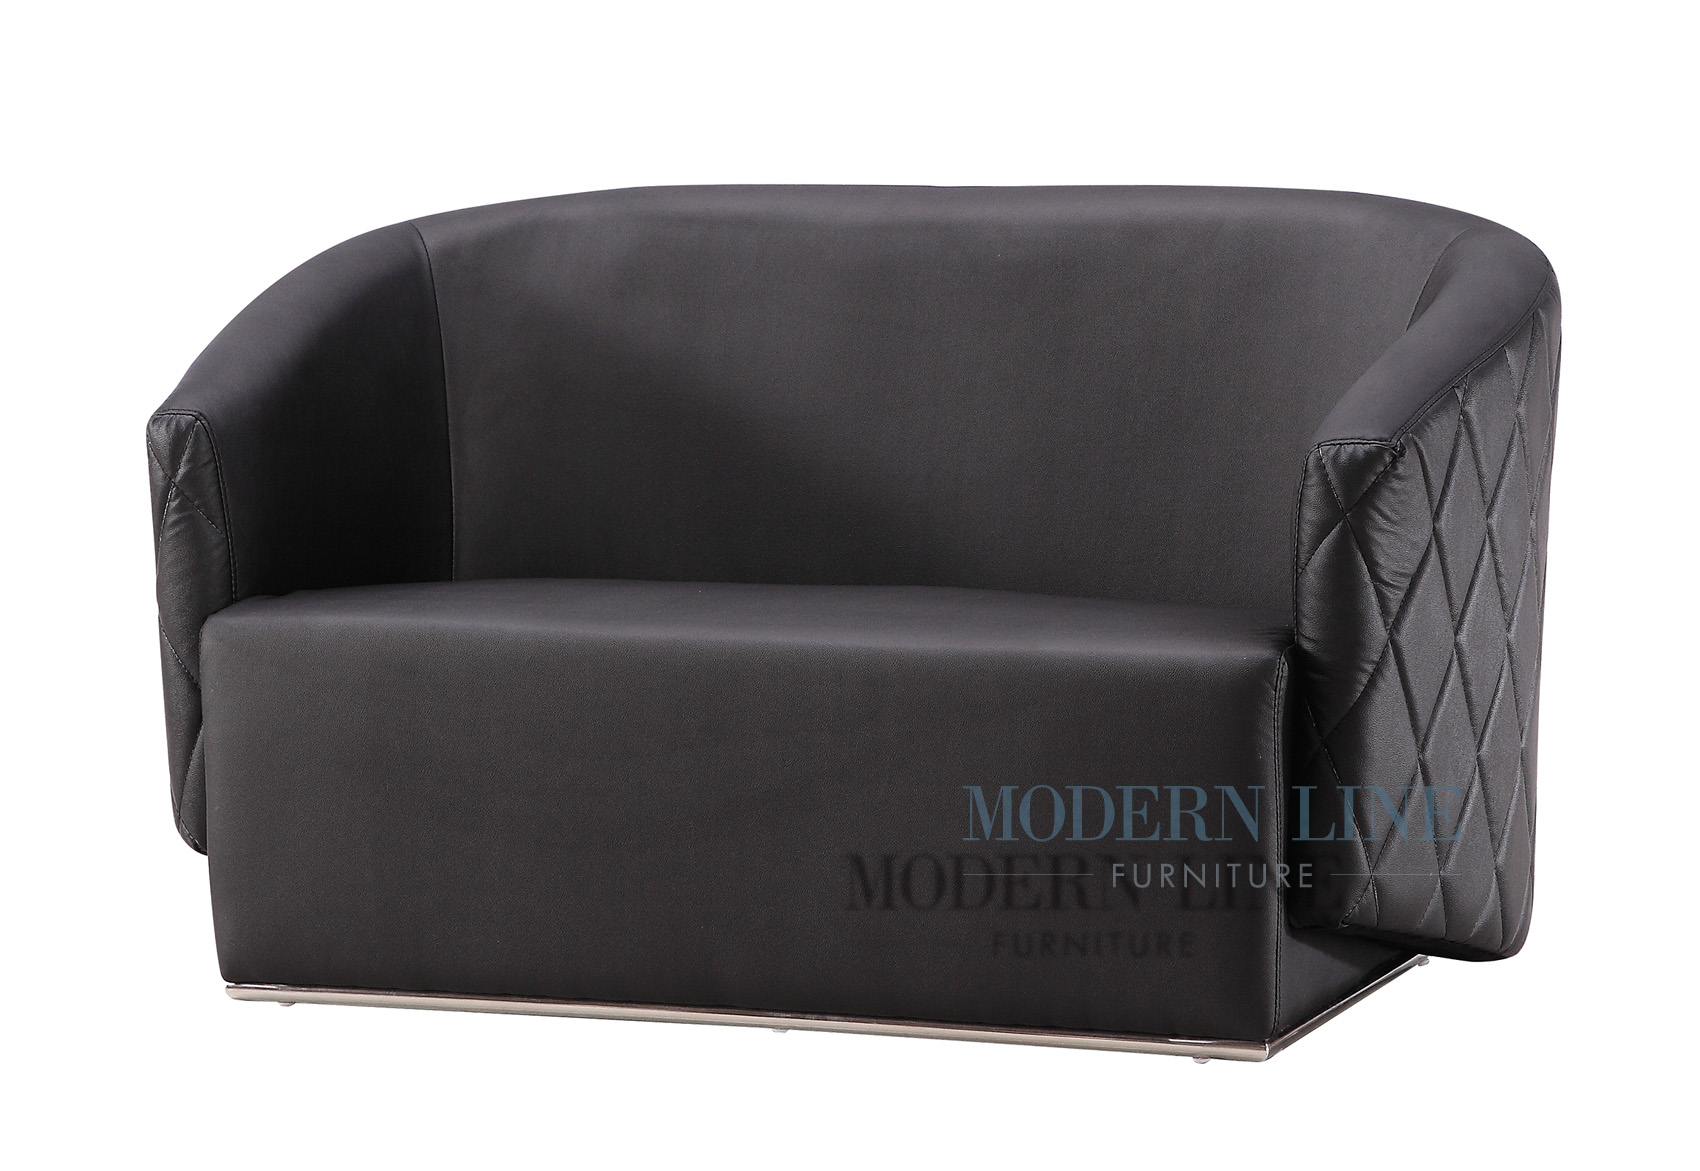 modern line furniture commercial furniture custom made furniture seating collection model cubao modern black leather club loveseat